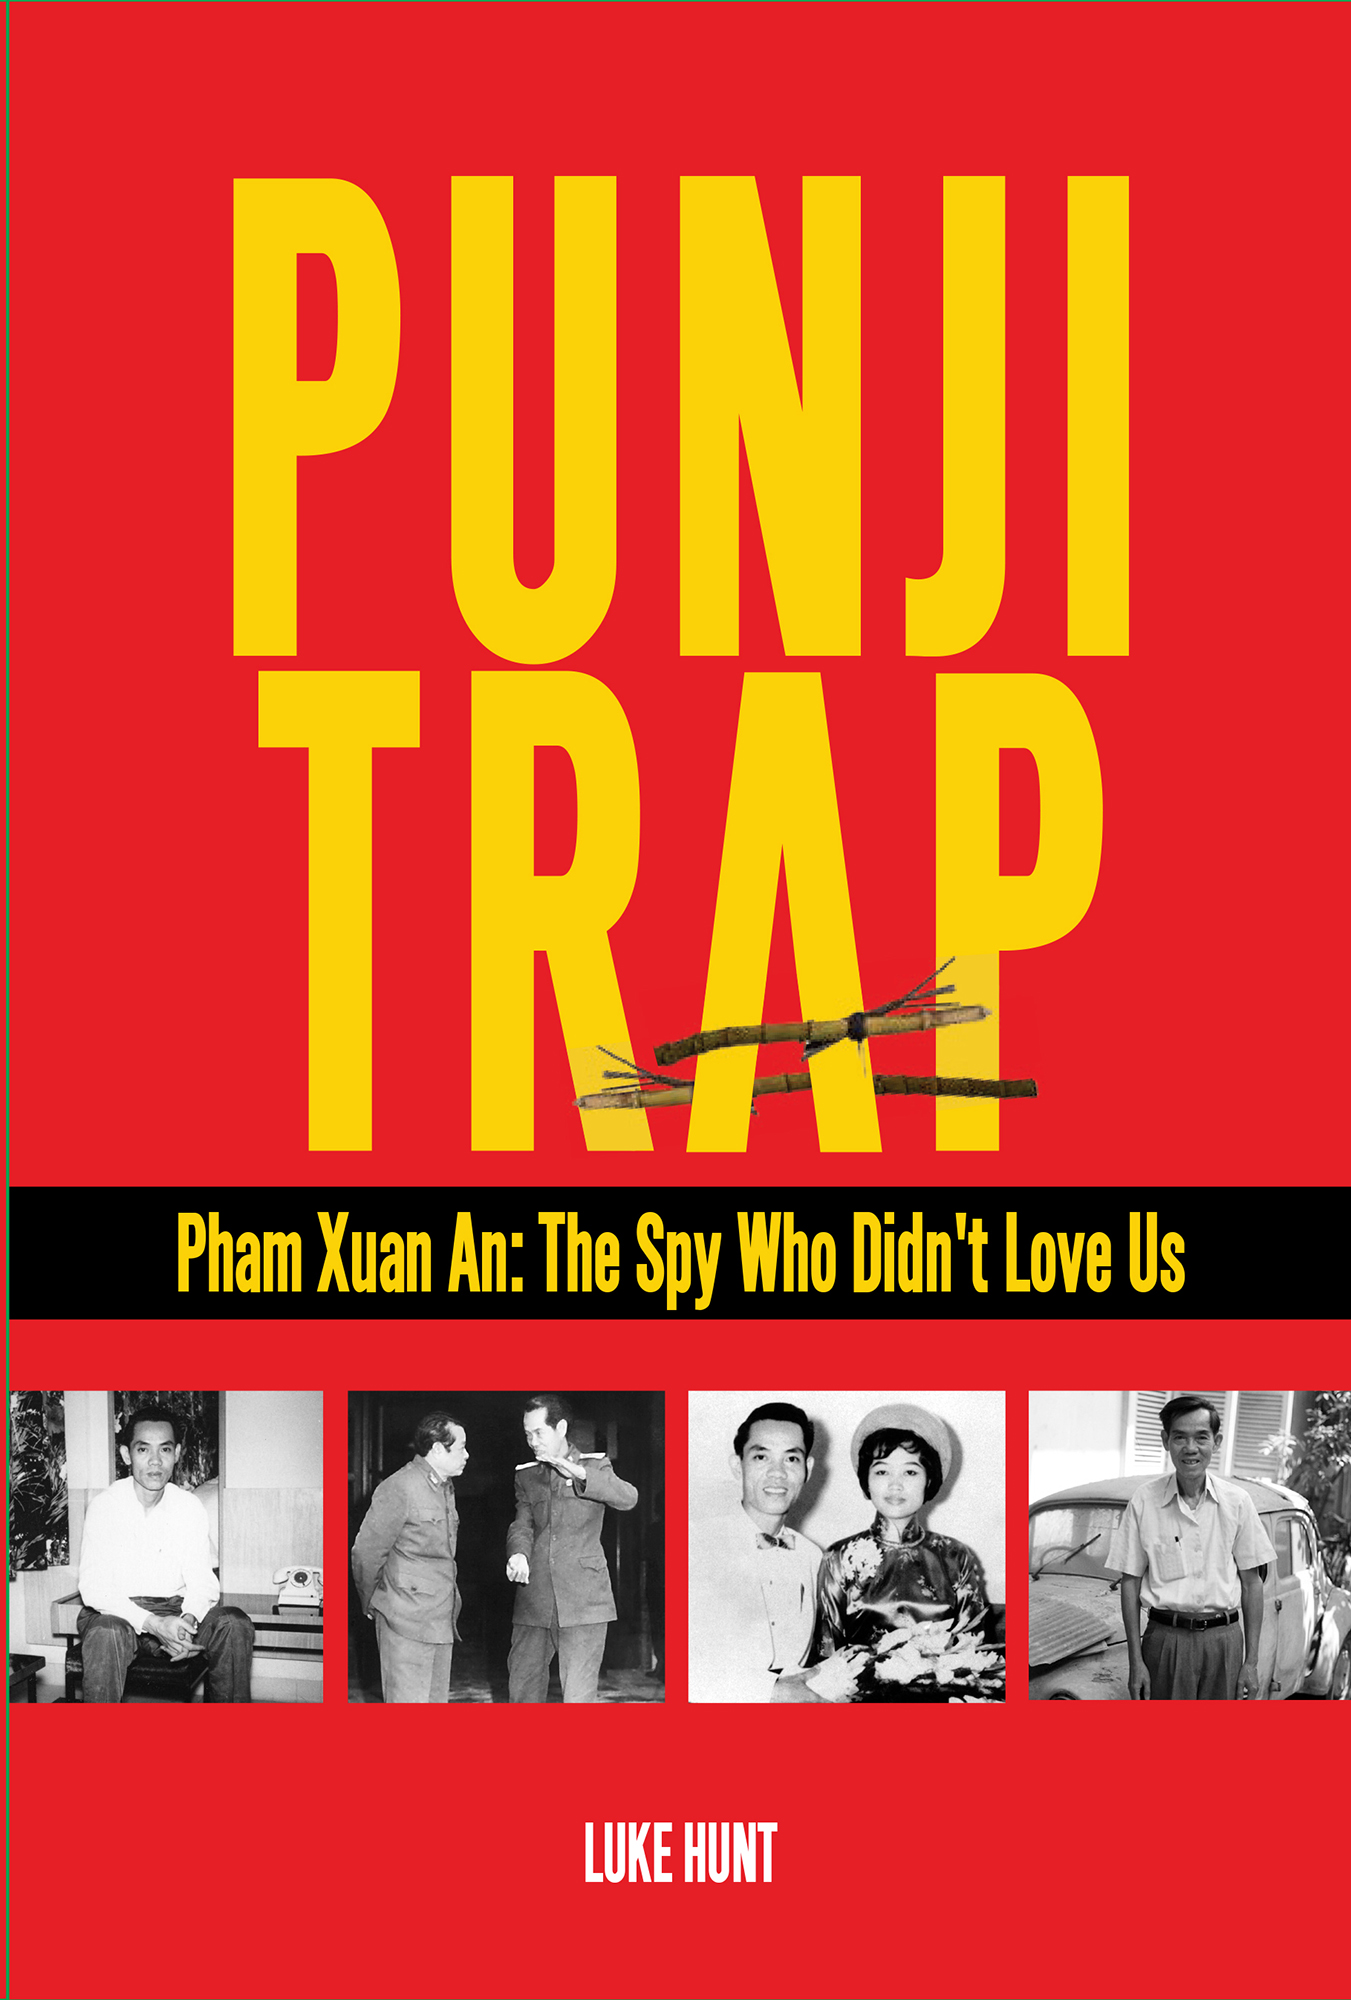 The Punji Trap, by Luke Hunt